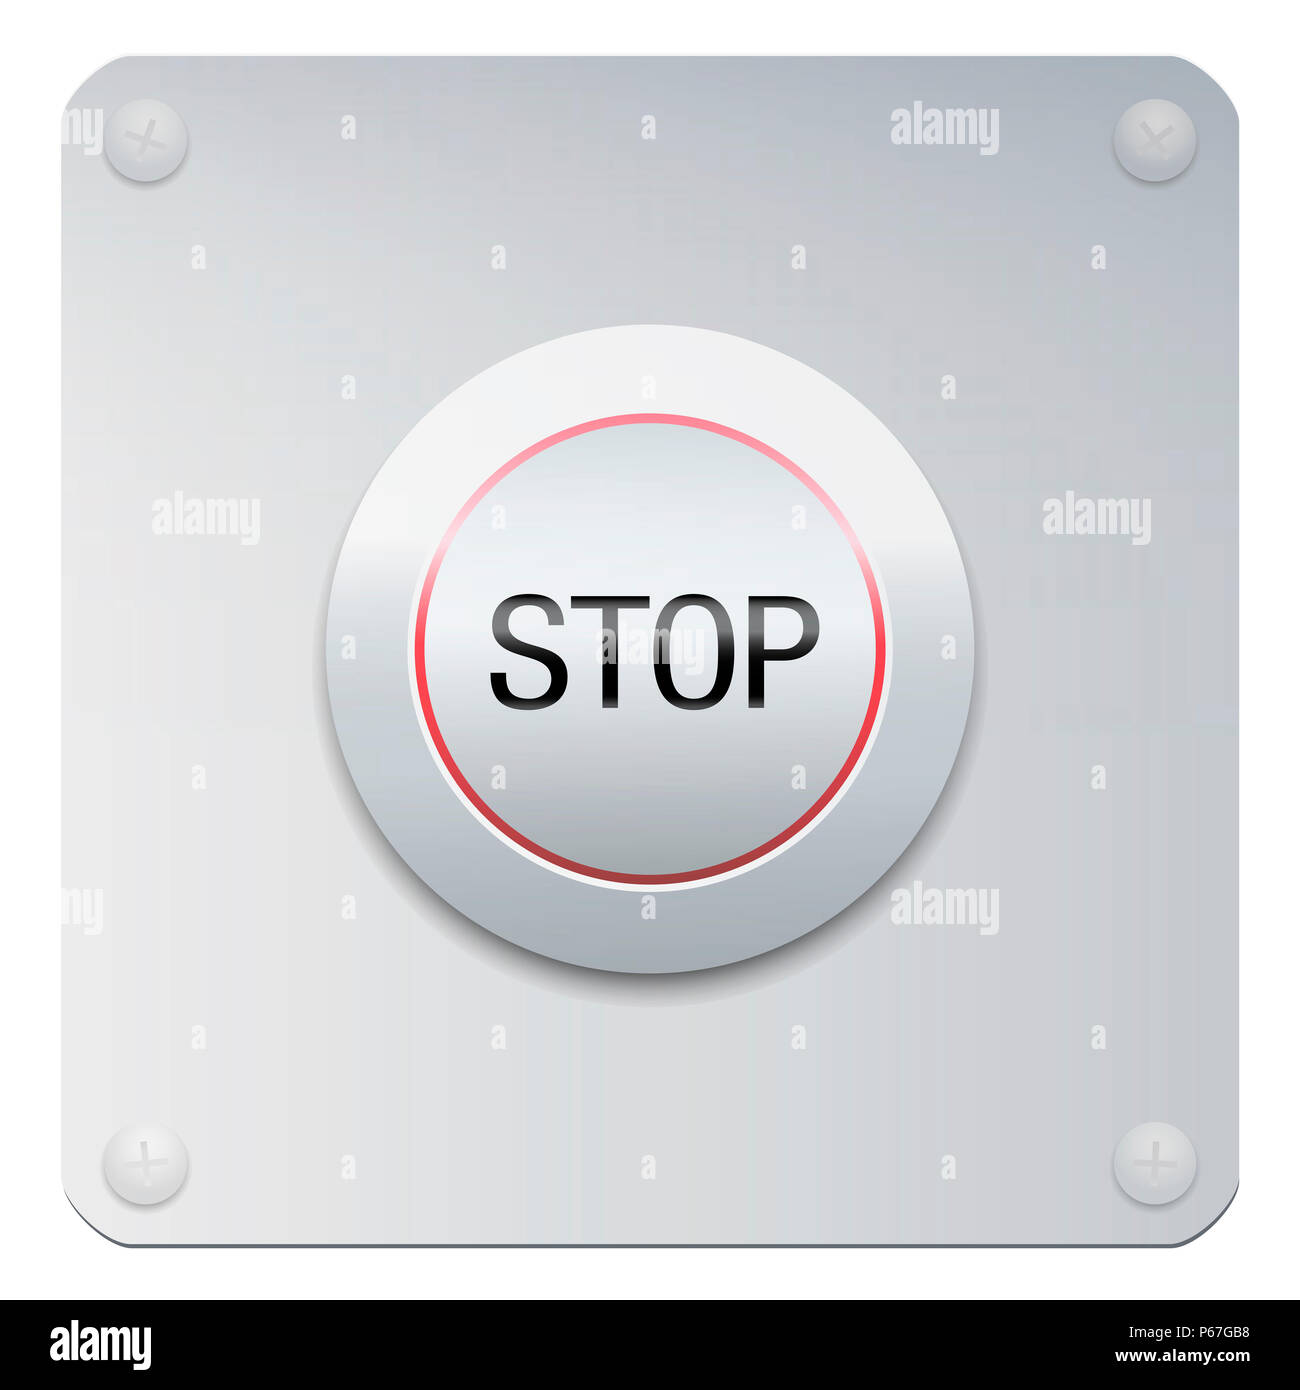 Stop button on a chrome panel to stop machines or instruments, but also injustices, oppressions, insults, addictions, missteps, increase, expansion. - Stock Image